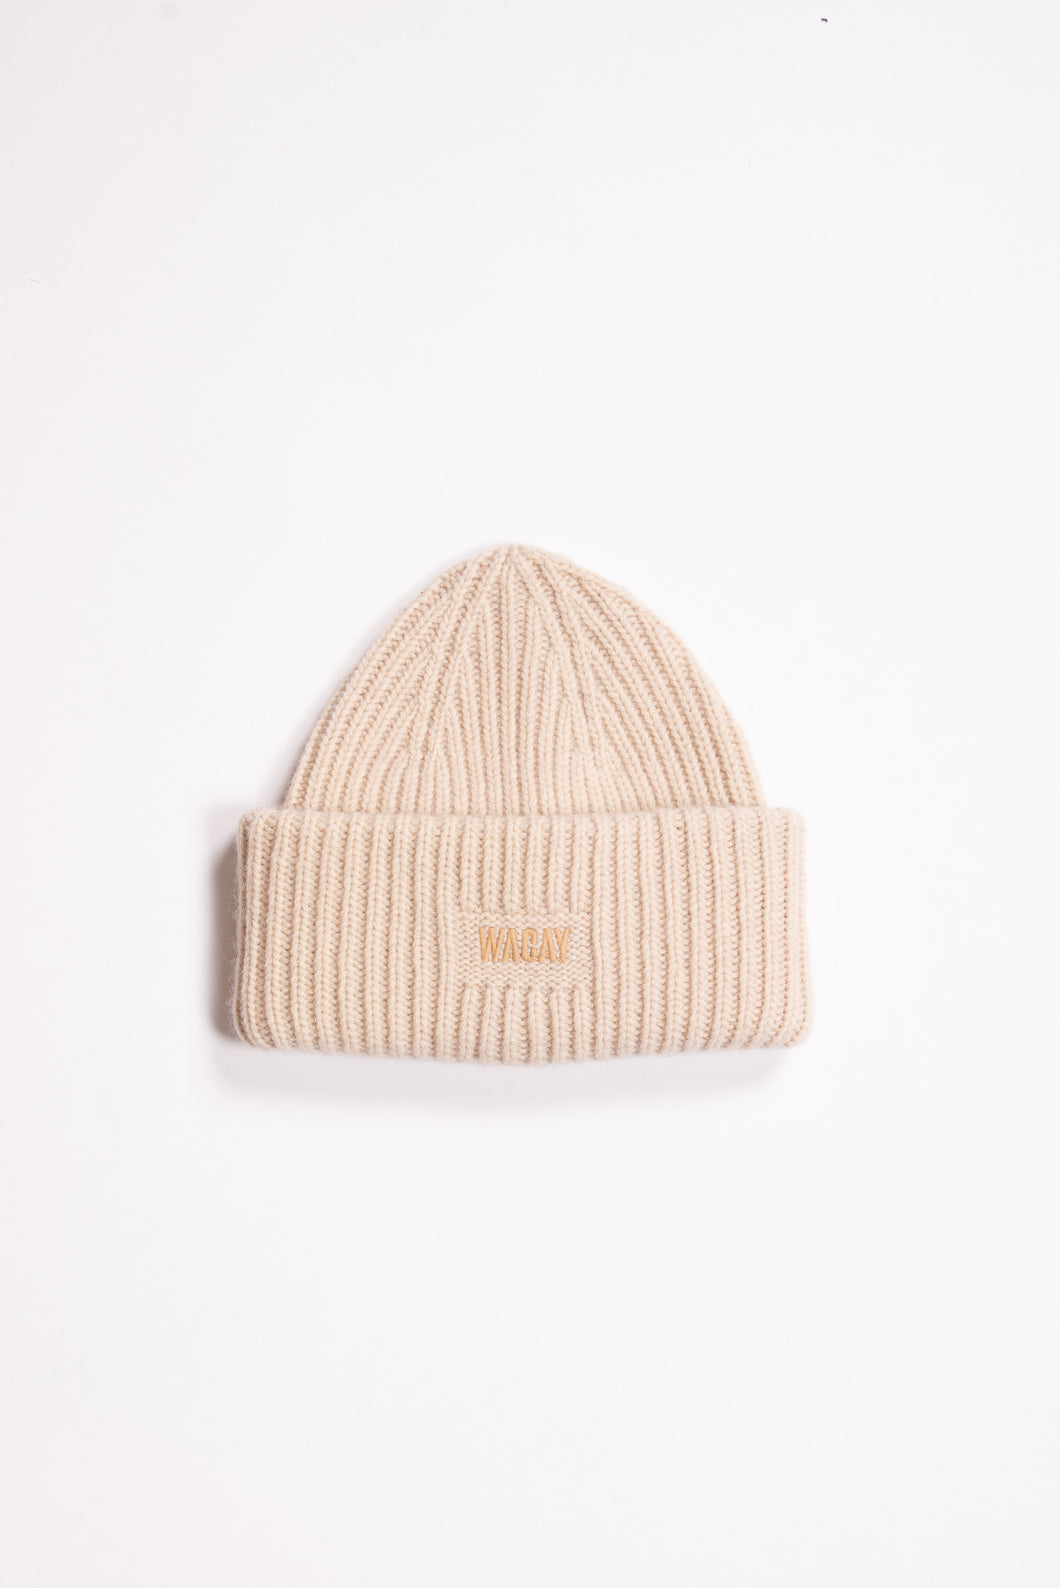 Wool Beanie Hat Off White